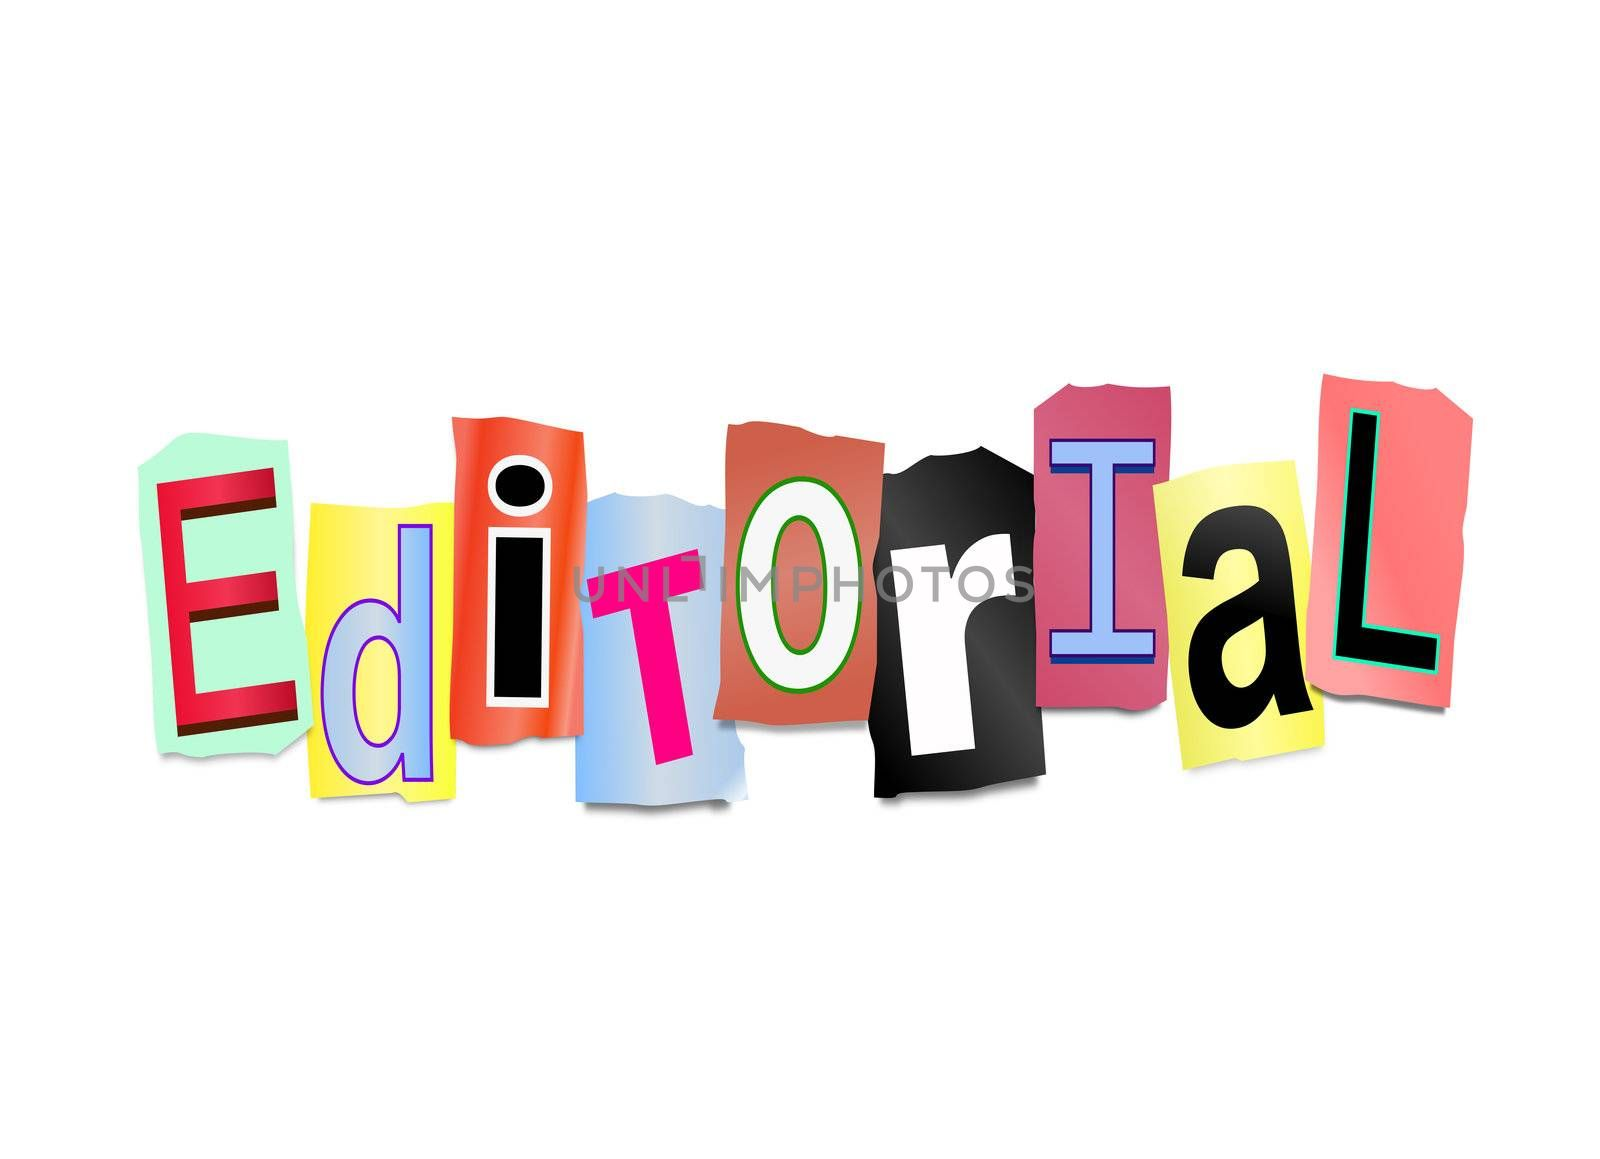 Illustration depicting cutout printed letters arranged to form the word editorial.